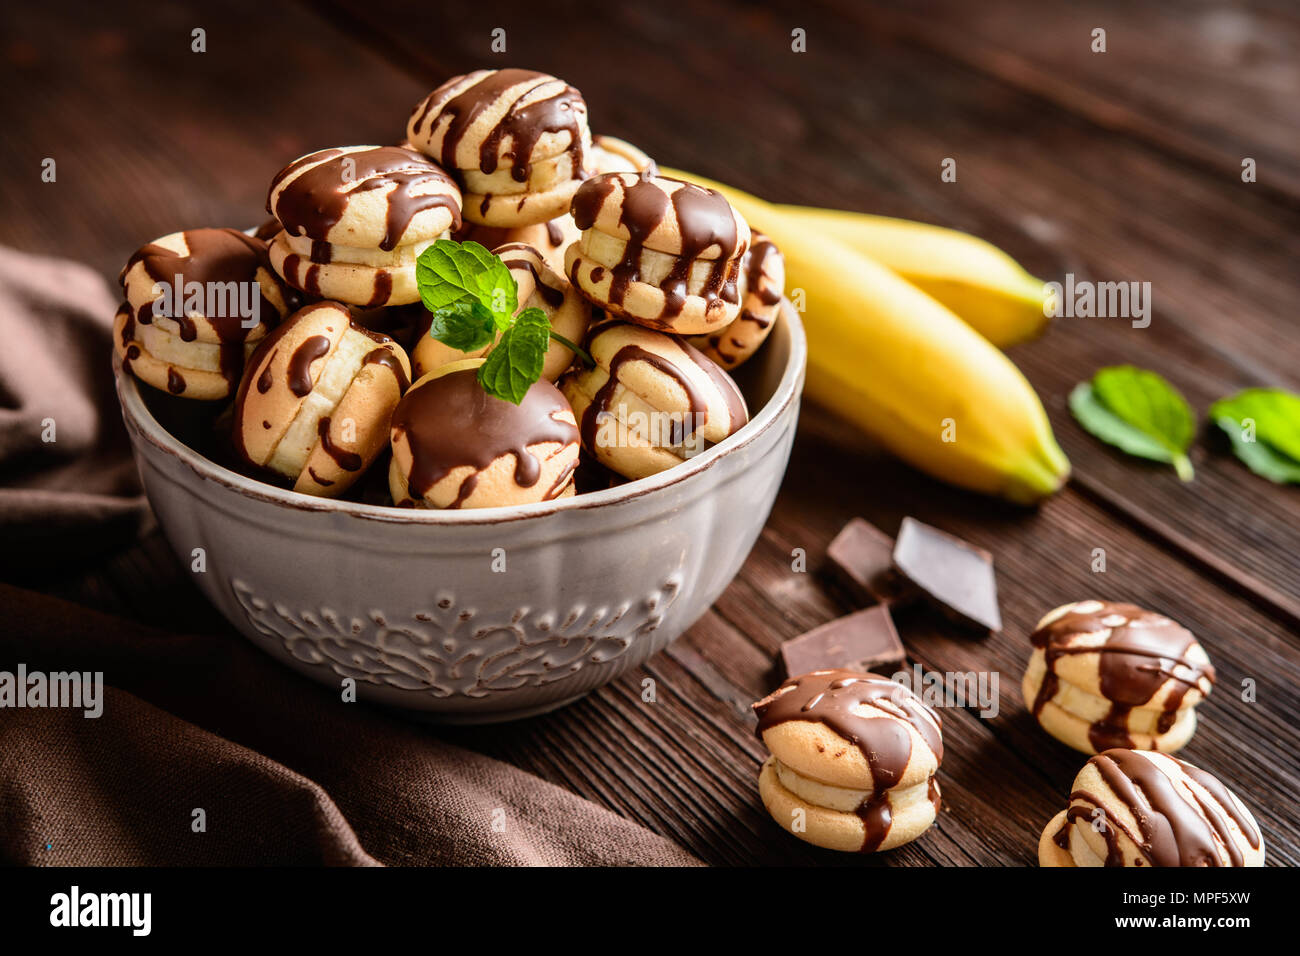 Round sponge biscuits stuffed with banana slices and topped with chocolate - Stock Image